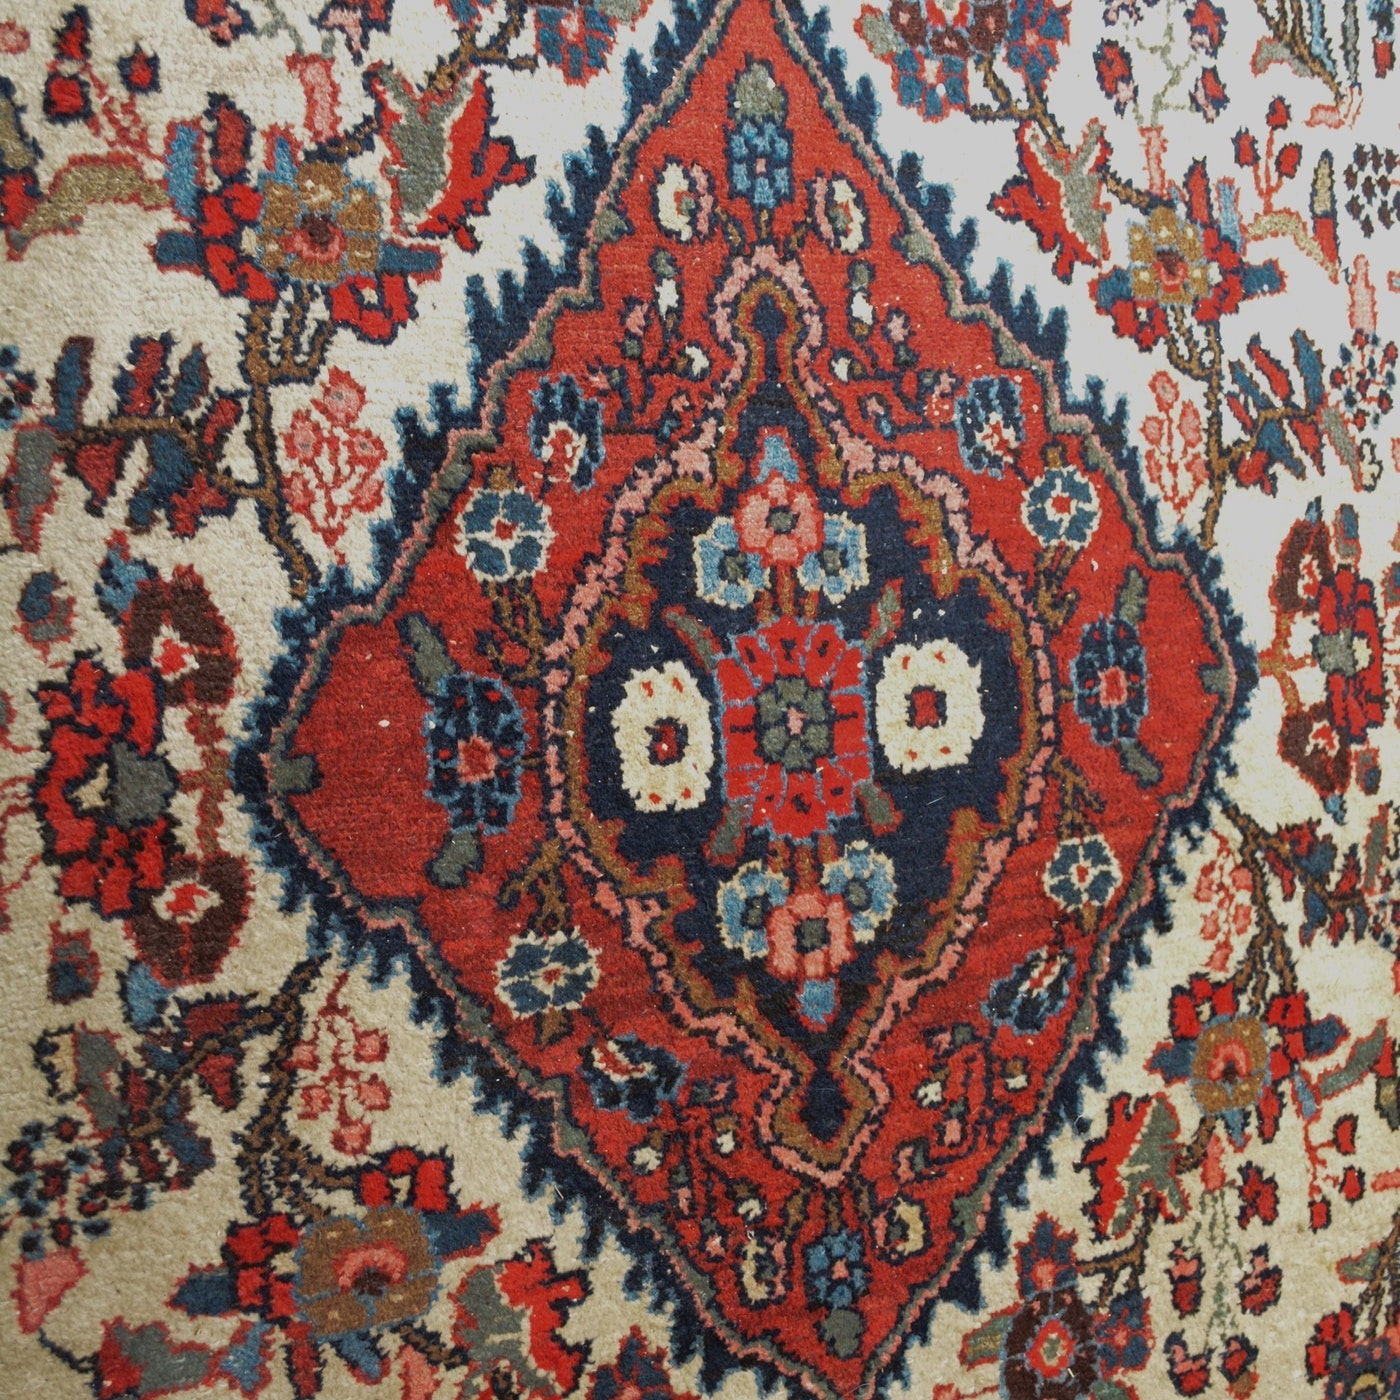 Hand-Knotted Persian Wool Room Sized Rug